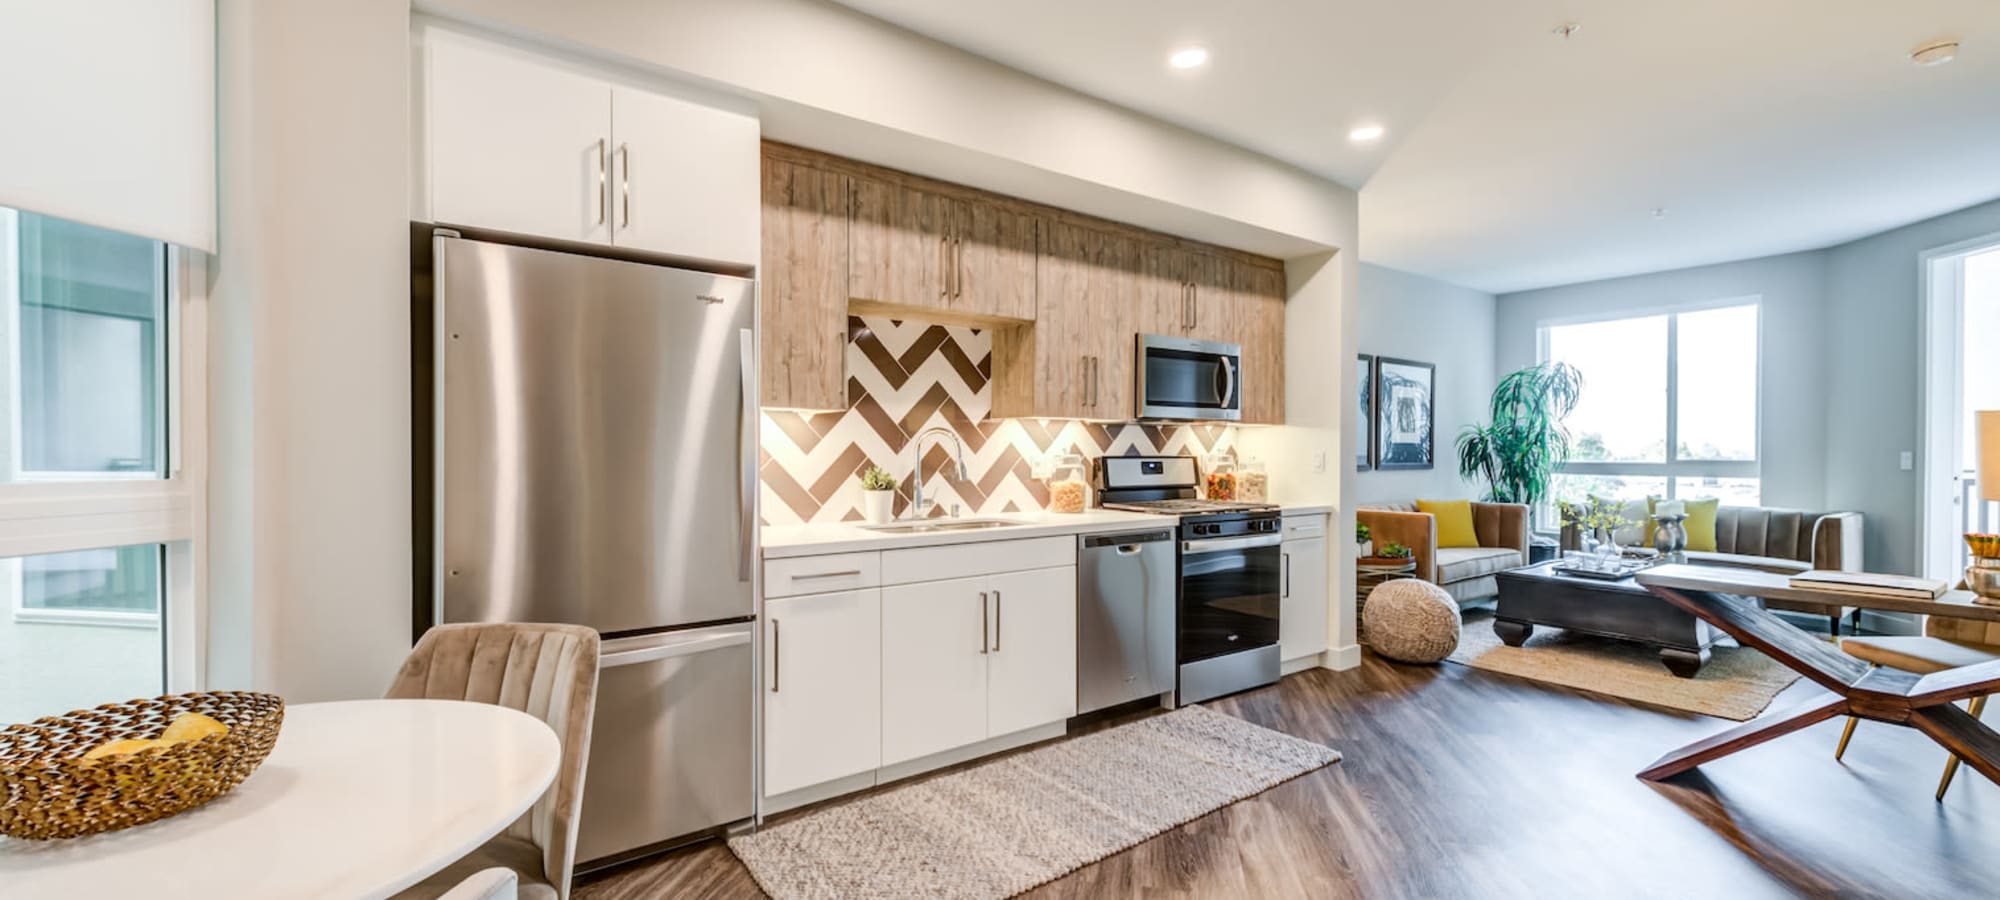 Floor plans at The Link in Glendale, California